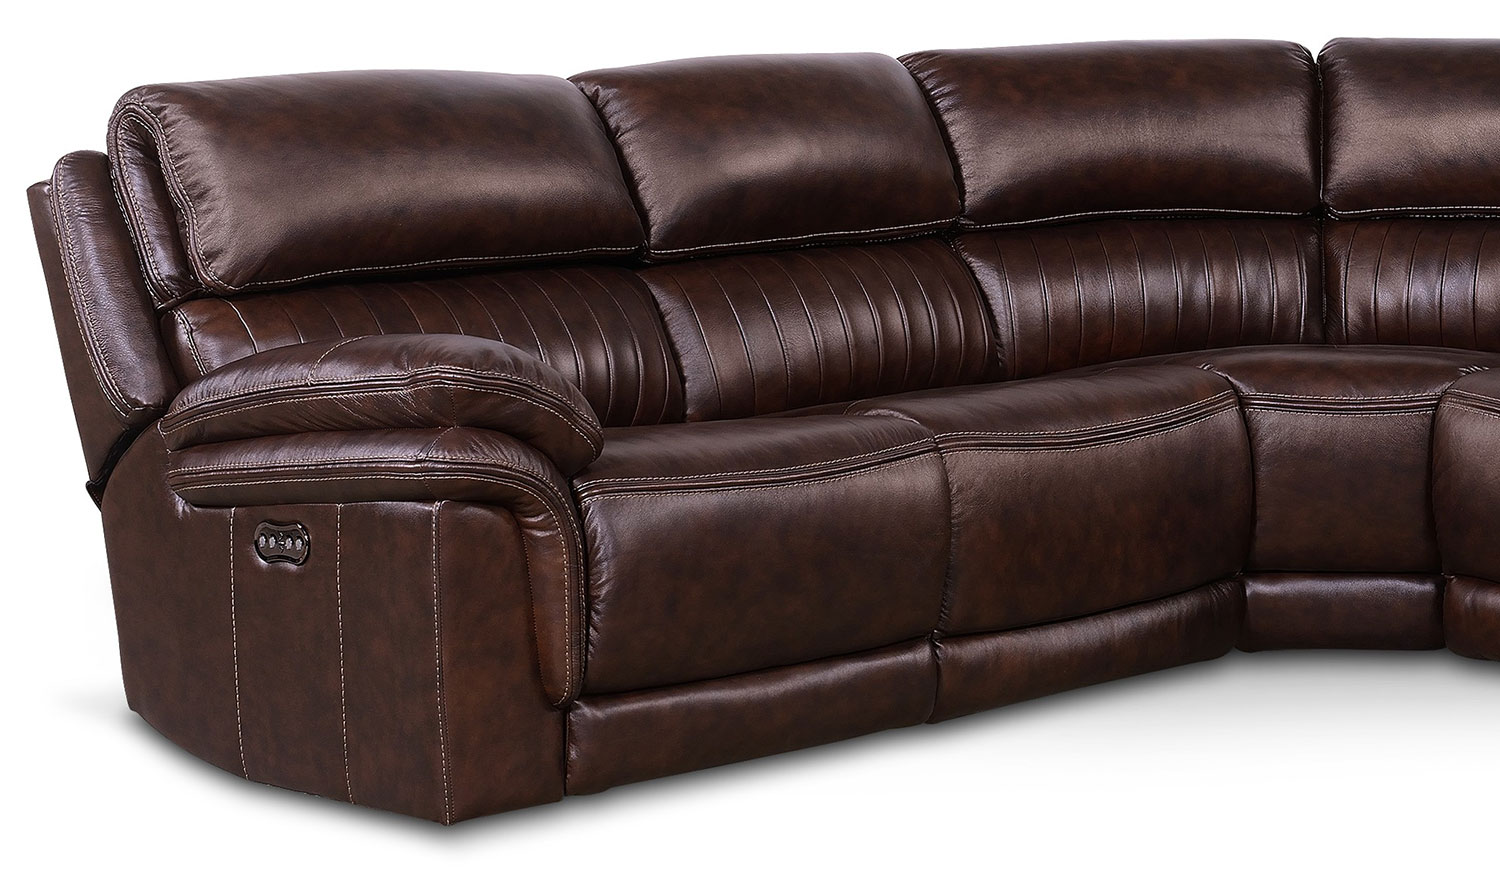 Monterey 5 piece power reclining sectional chocolate for 5 piece reclining sectional sofa